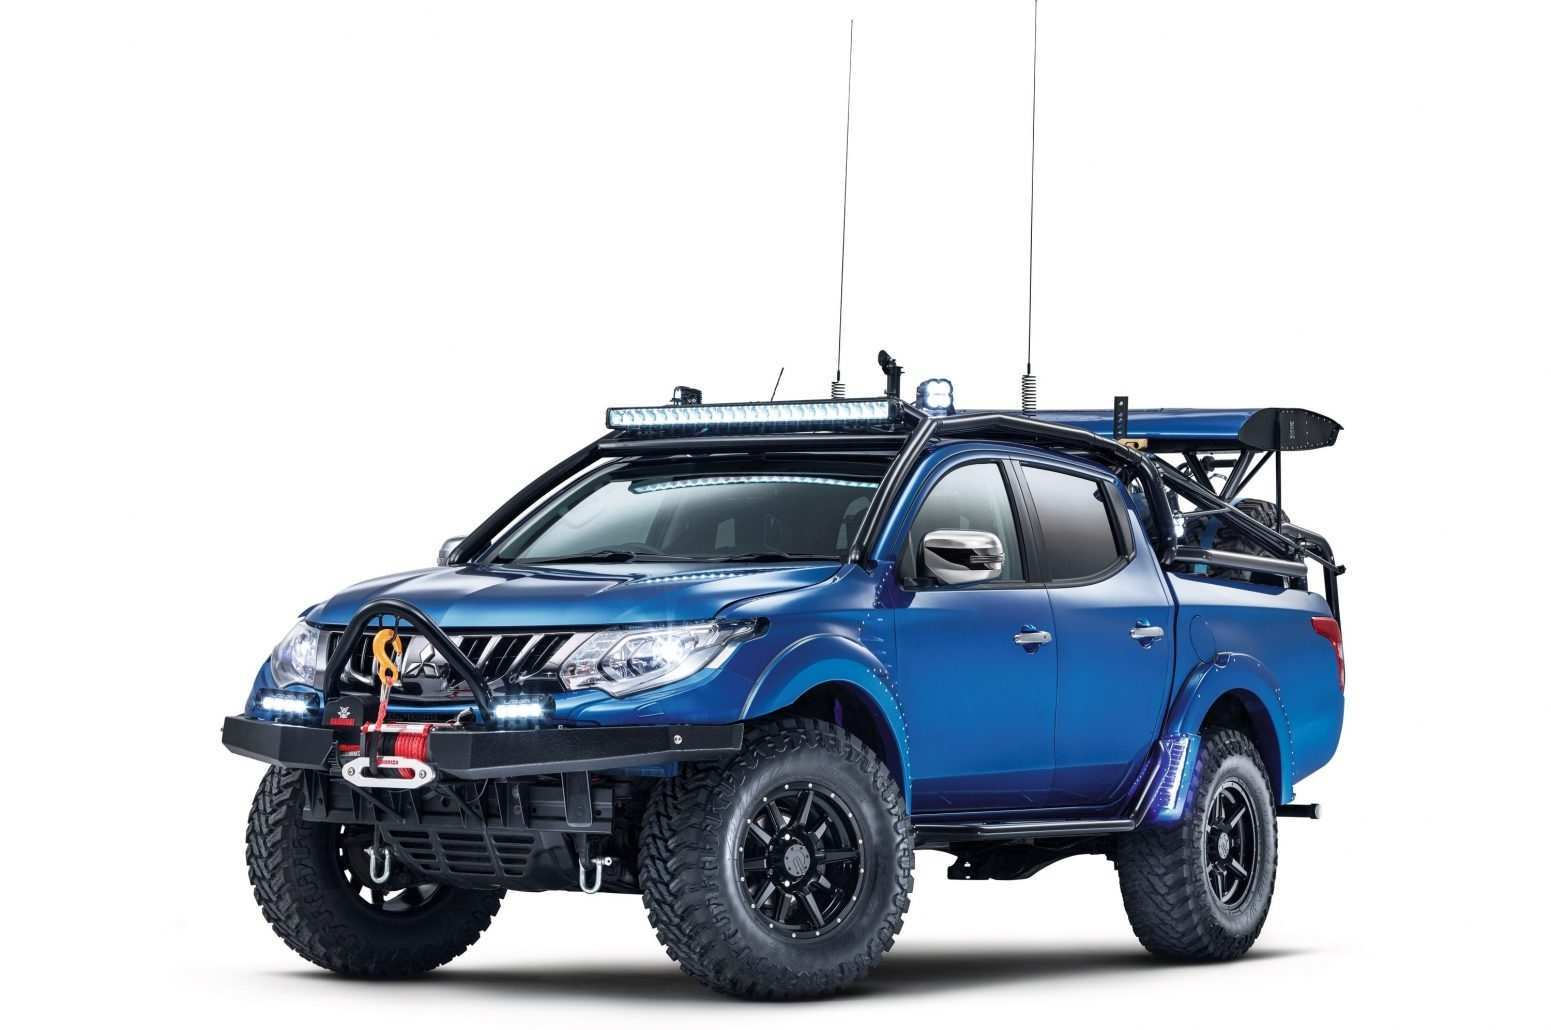 57 The Best 2020 Mitsubishi Triton Perfect Outdoor Engine